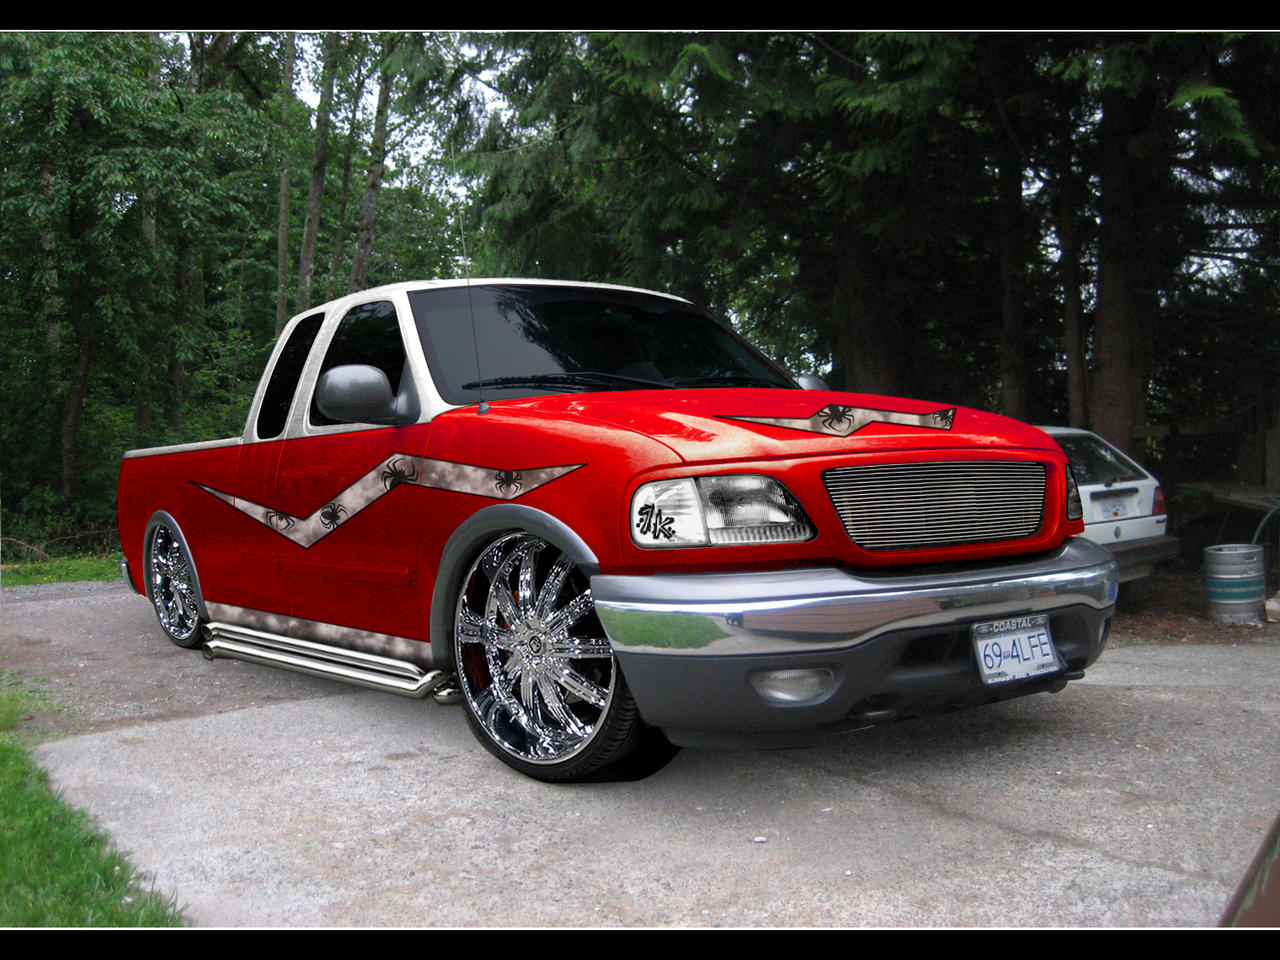 Pimped Out F150 For Ntt6 By Krazykohla On Deviantart